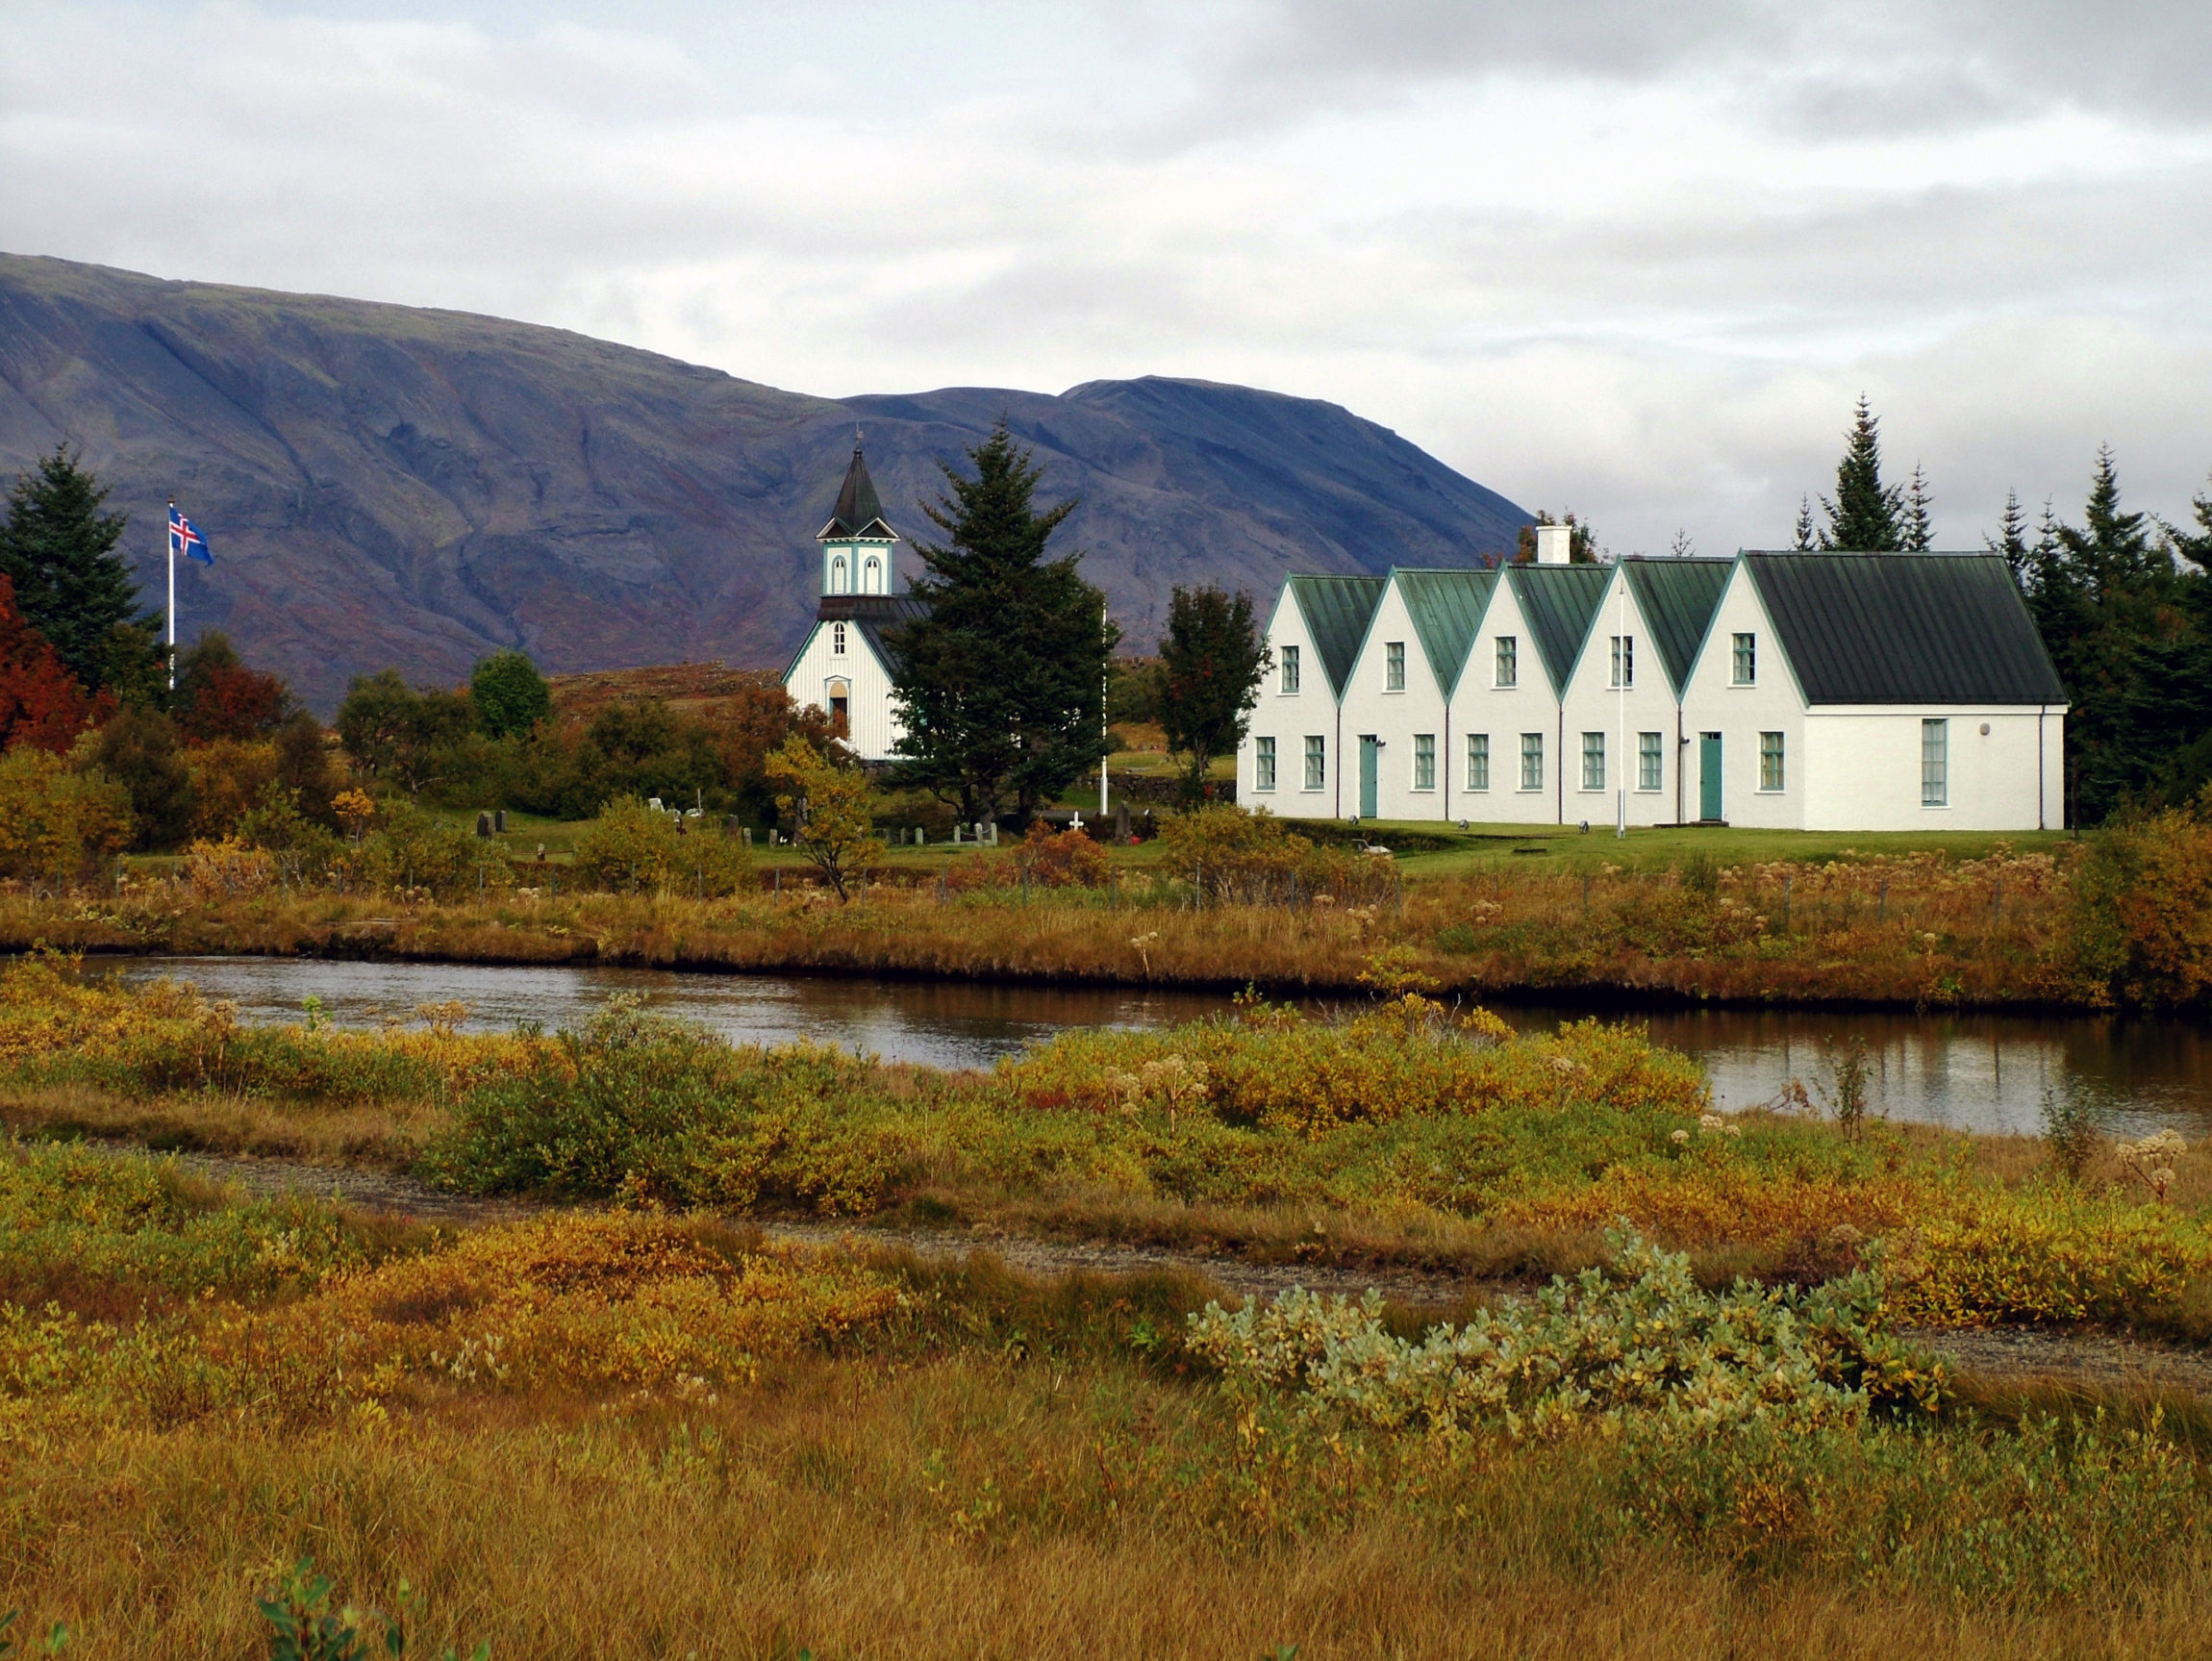 Þingvellir chuch and farmhouse.